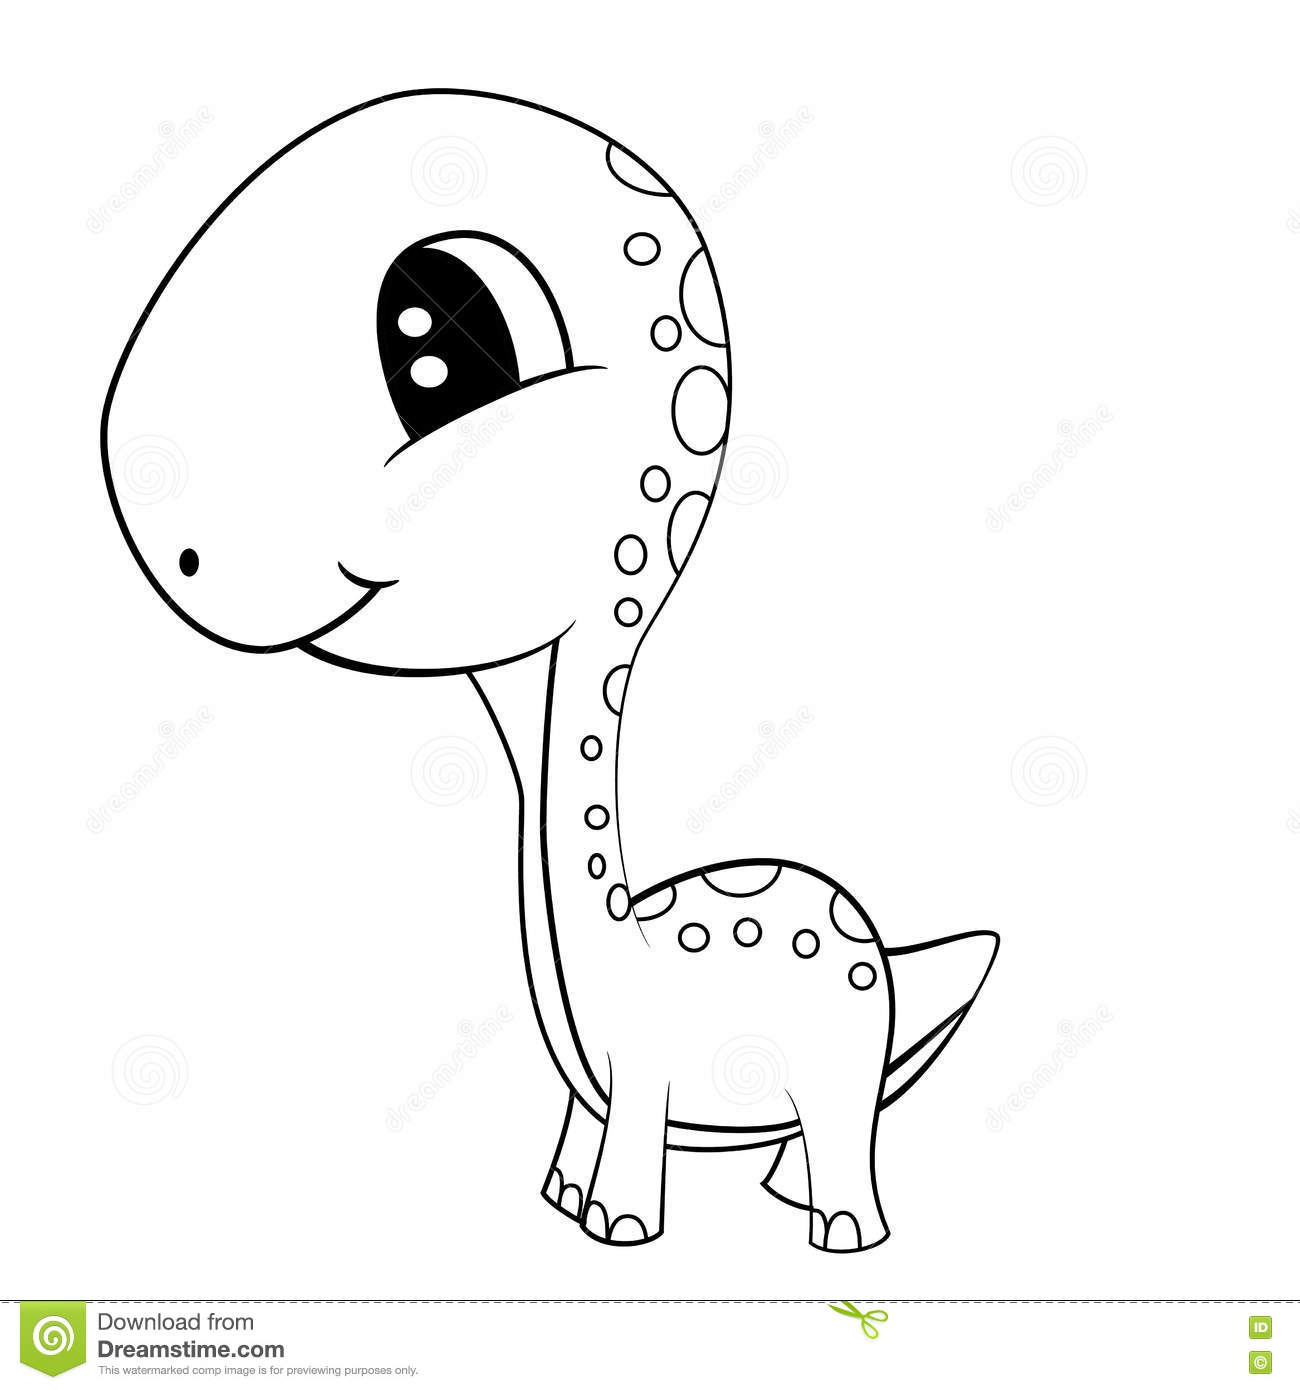 Cute Black And White Cartoon Of Baby Brontosaurus Dinosaur